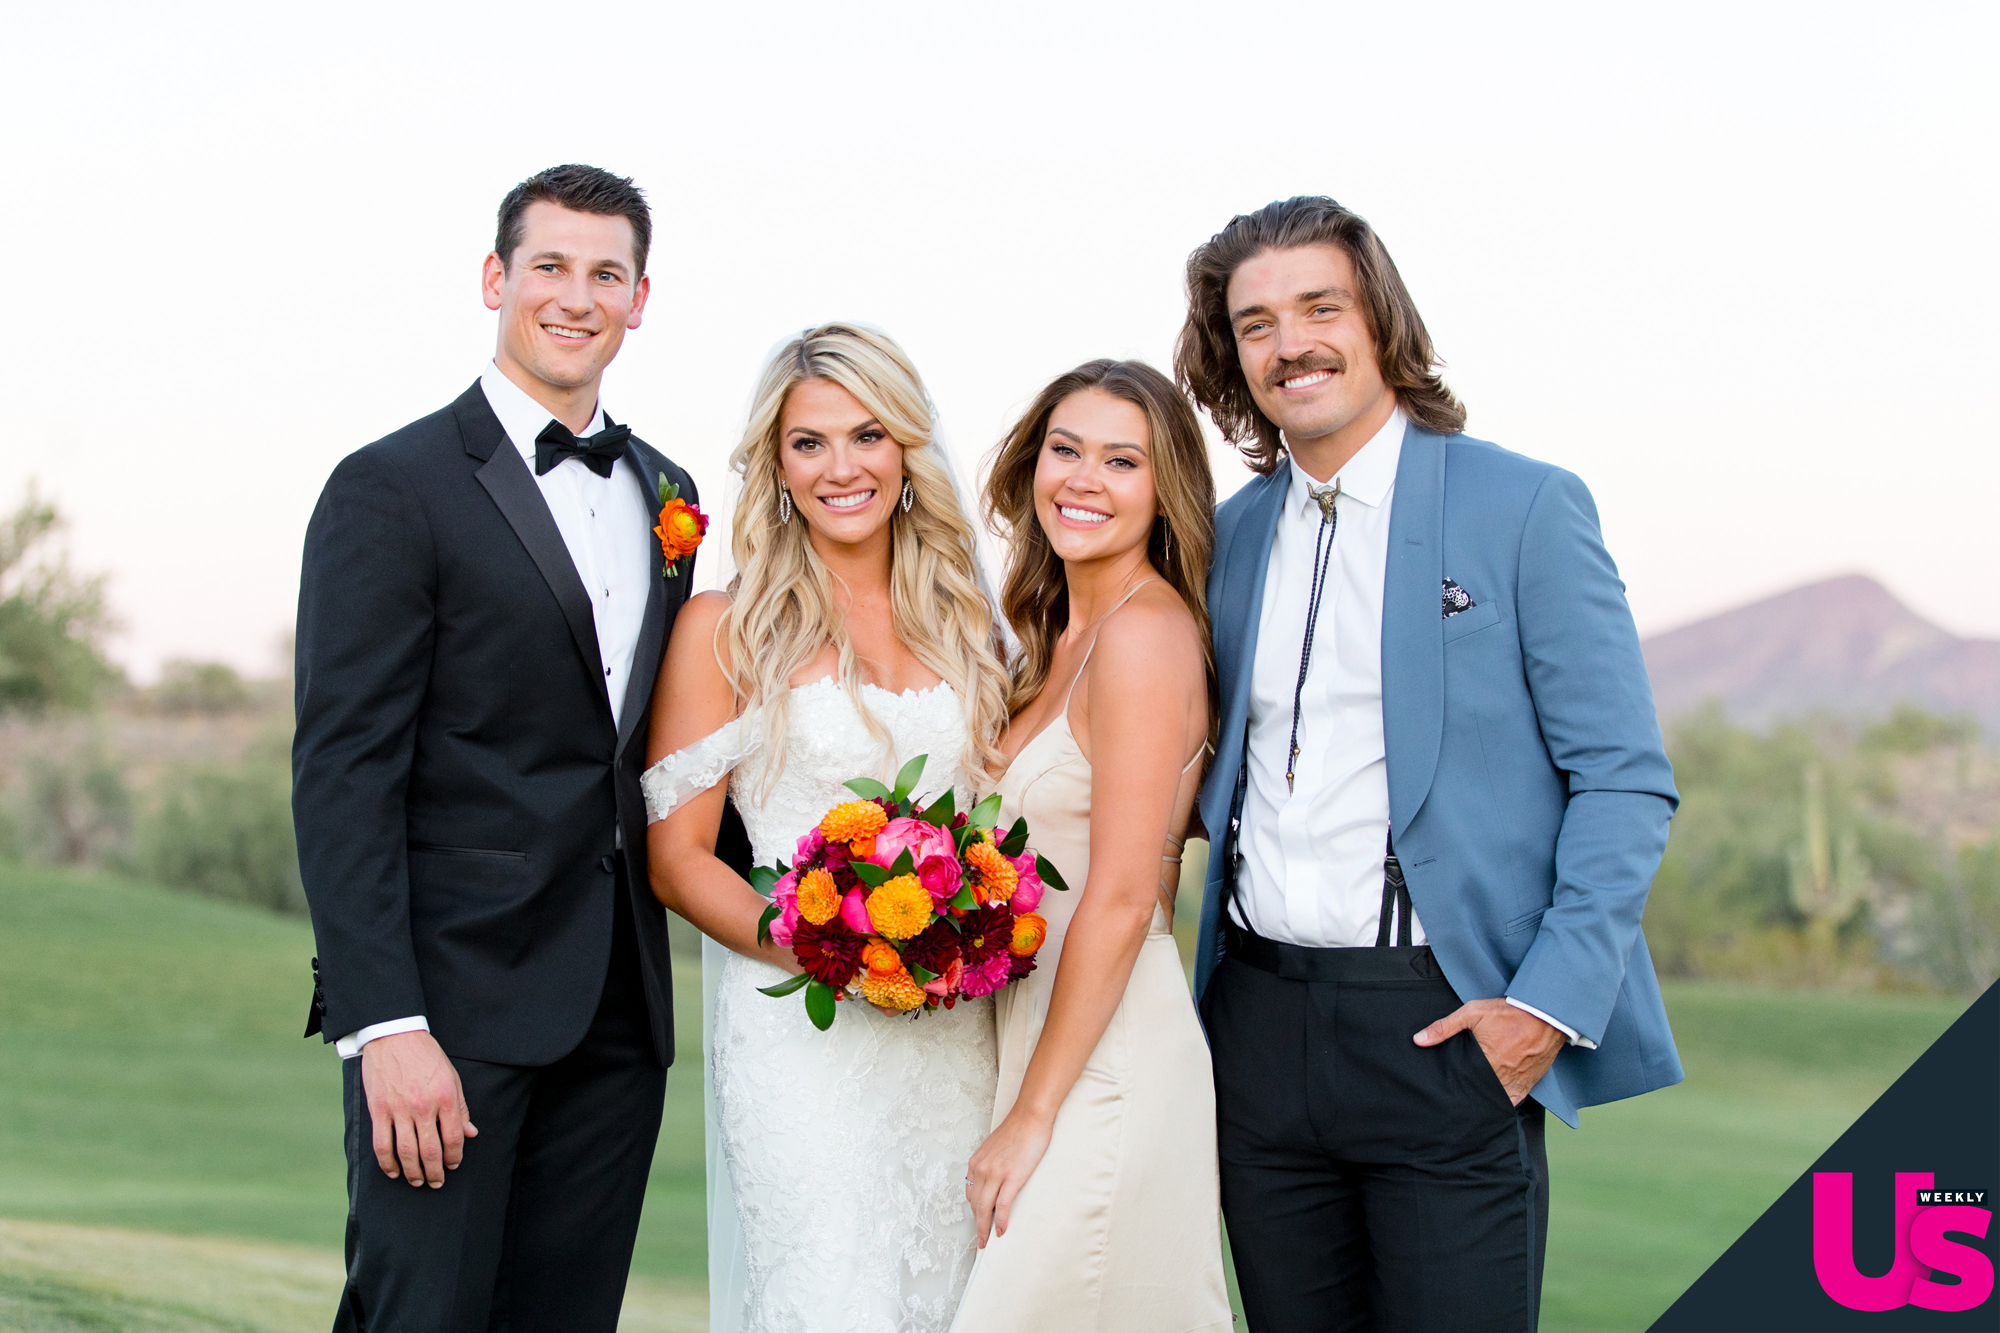 Sarah-Rose-Summers-with-Dean-and-Caelynn-wedding